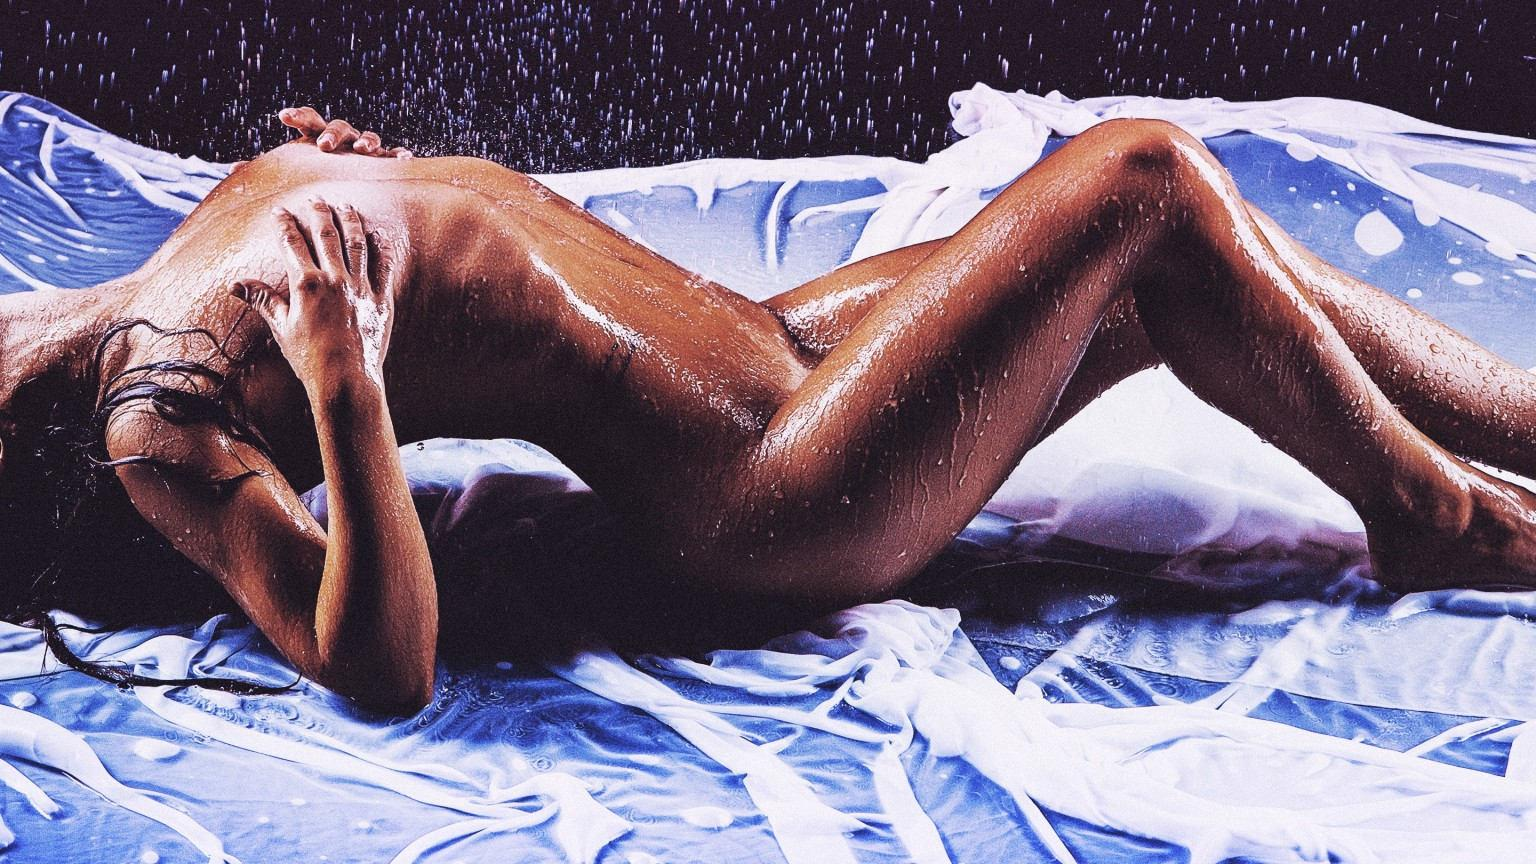 Let's Get Wet: A Lubricant Guide for Every Possible Scenario